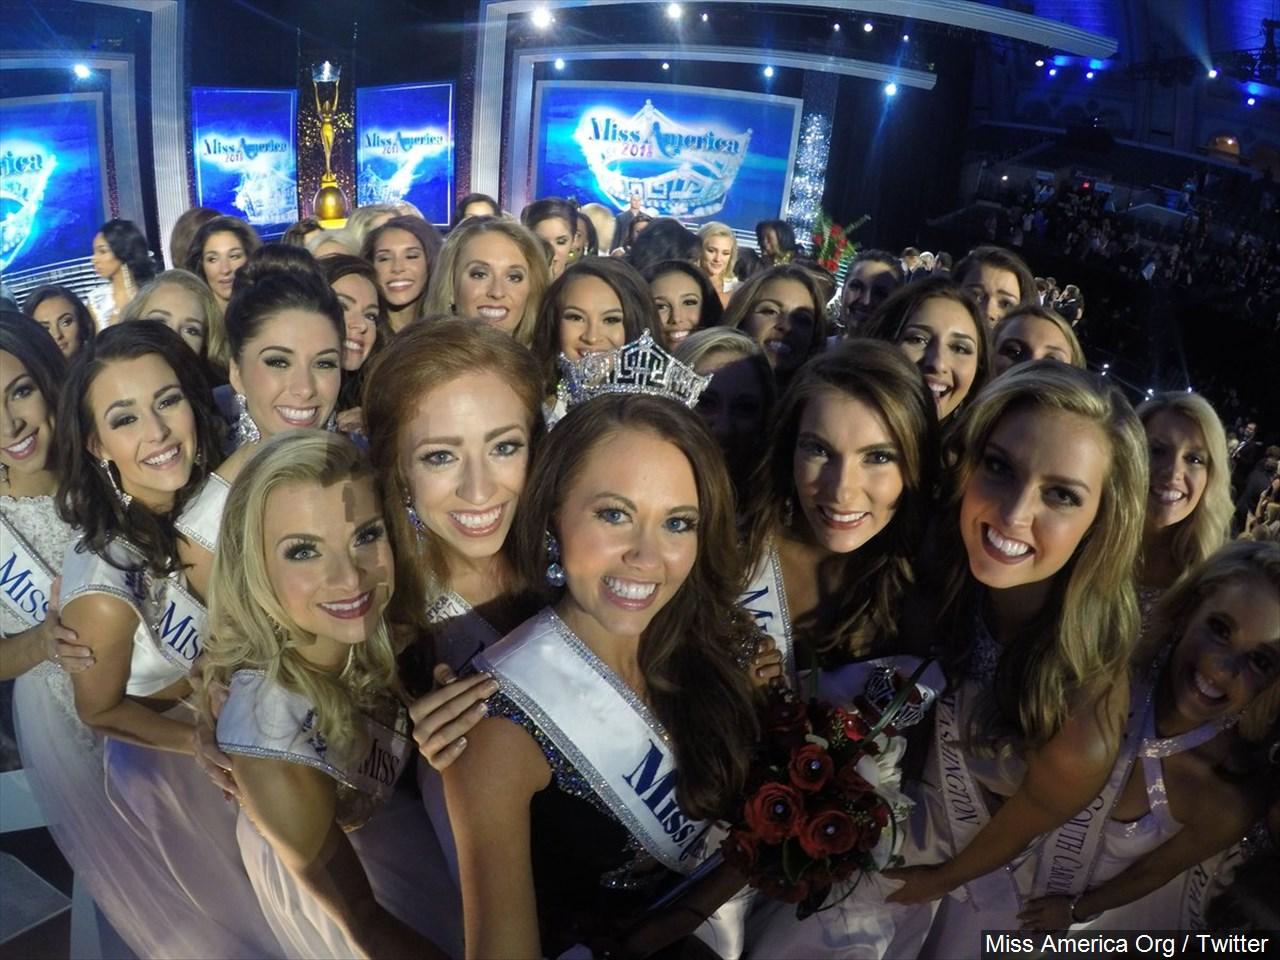 Miss America 2018, Cara Mund with fellow contestants. (Photo credit:{ }Miss America Org / Twitter via MGN online)